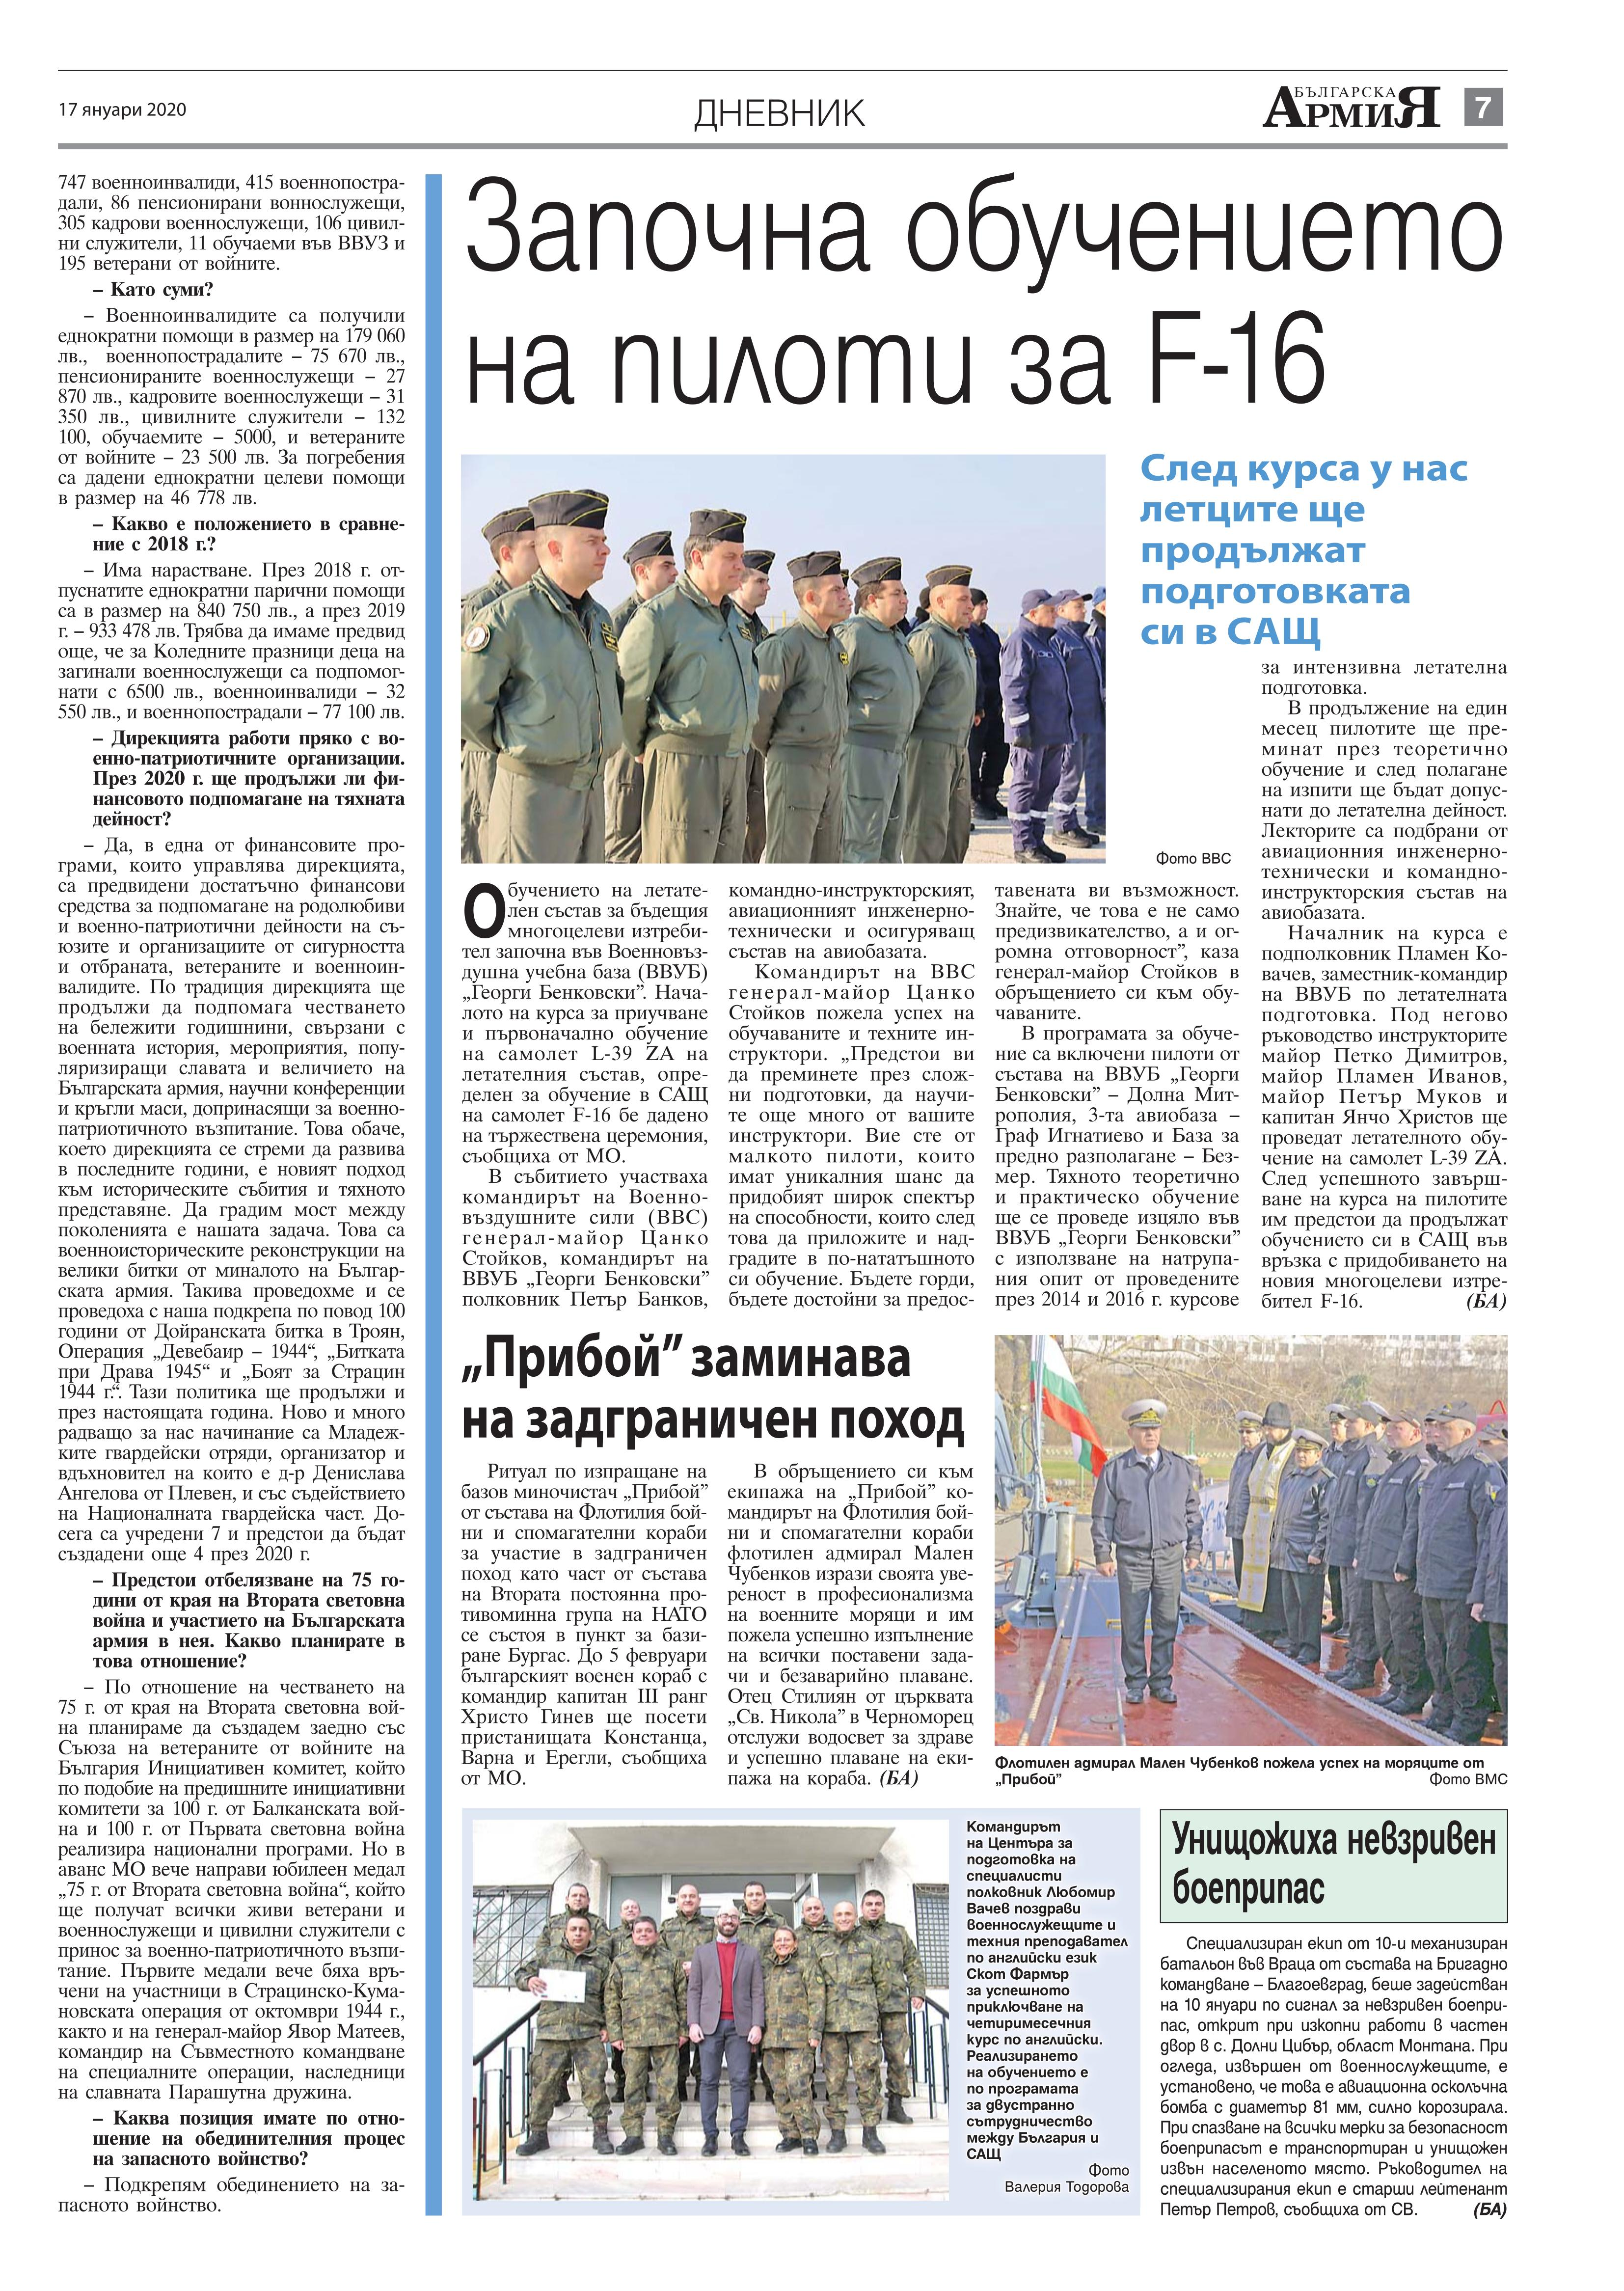 https://armymedia.bg/wp-content/uploads/2015/06/07.page1_-120.jpg